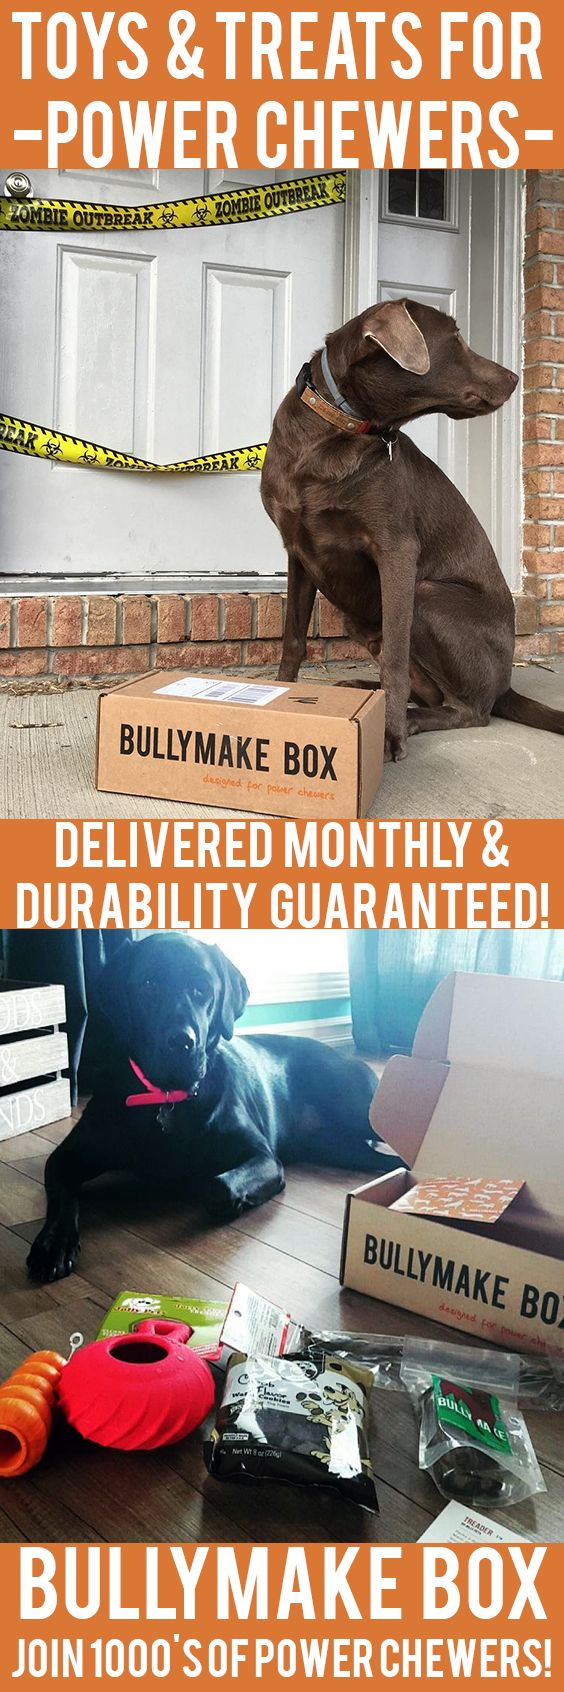 Is your dog a POWER CHEWER? Get DURABLE toys and DELICIOUS treats delivered monthly! All toys guaranteed 14 days or we replace them for free. See here: https://bullymake.com/?utm_source=pinterest&utm_medium=pinterest-ads&utm_term=lab-jan10&utm_content=lab-jan10